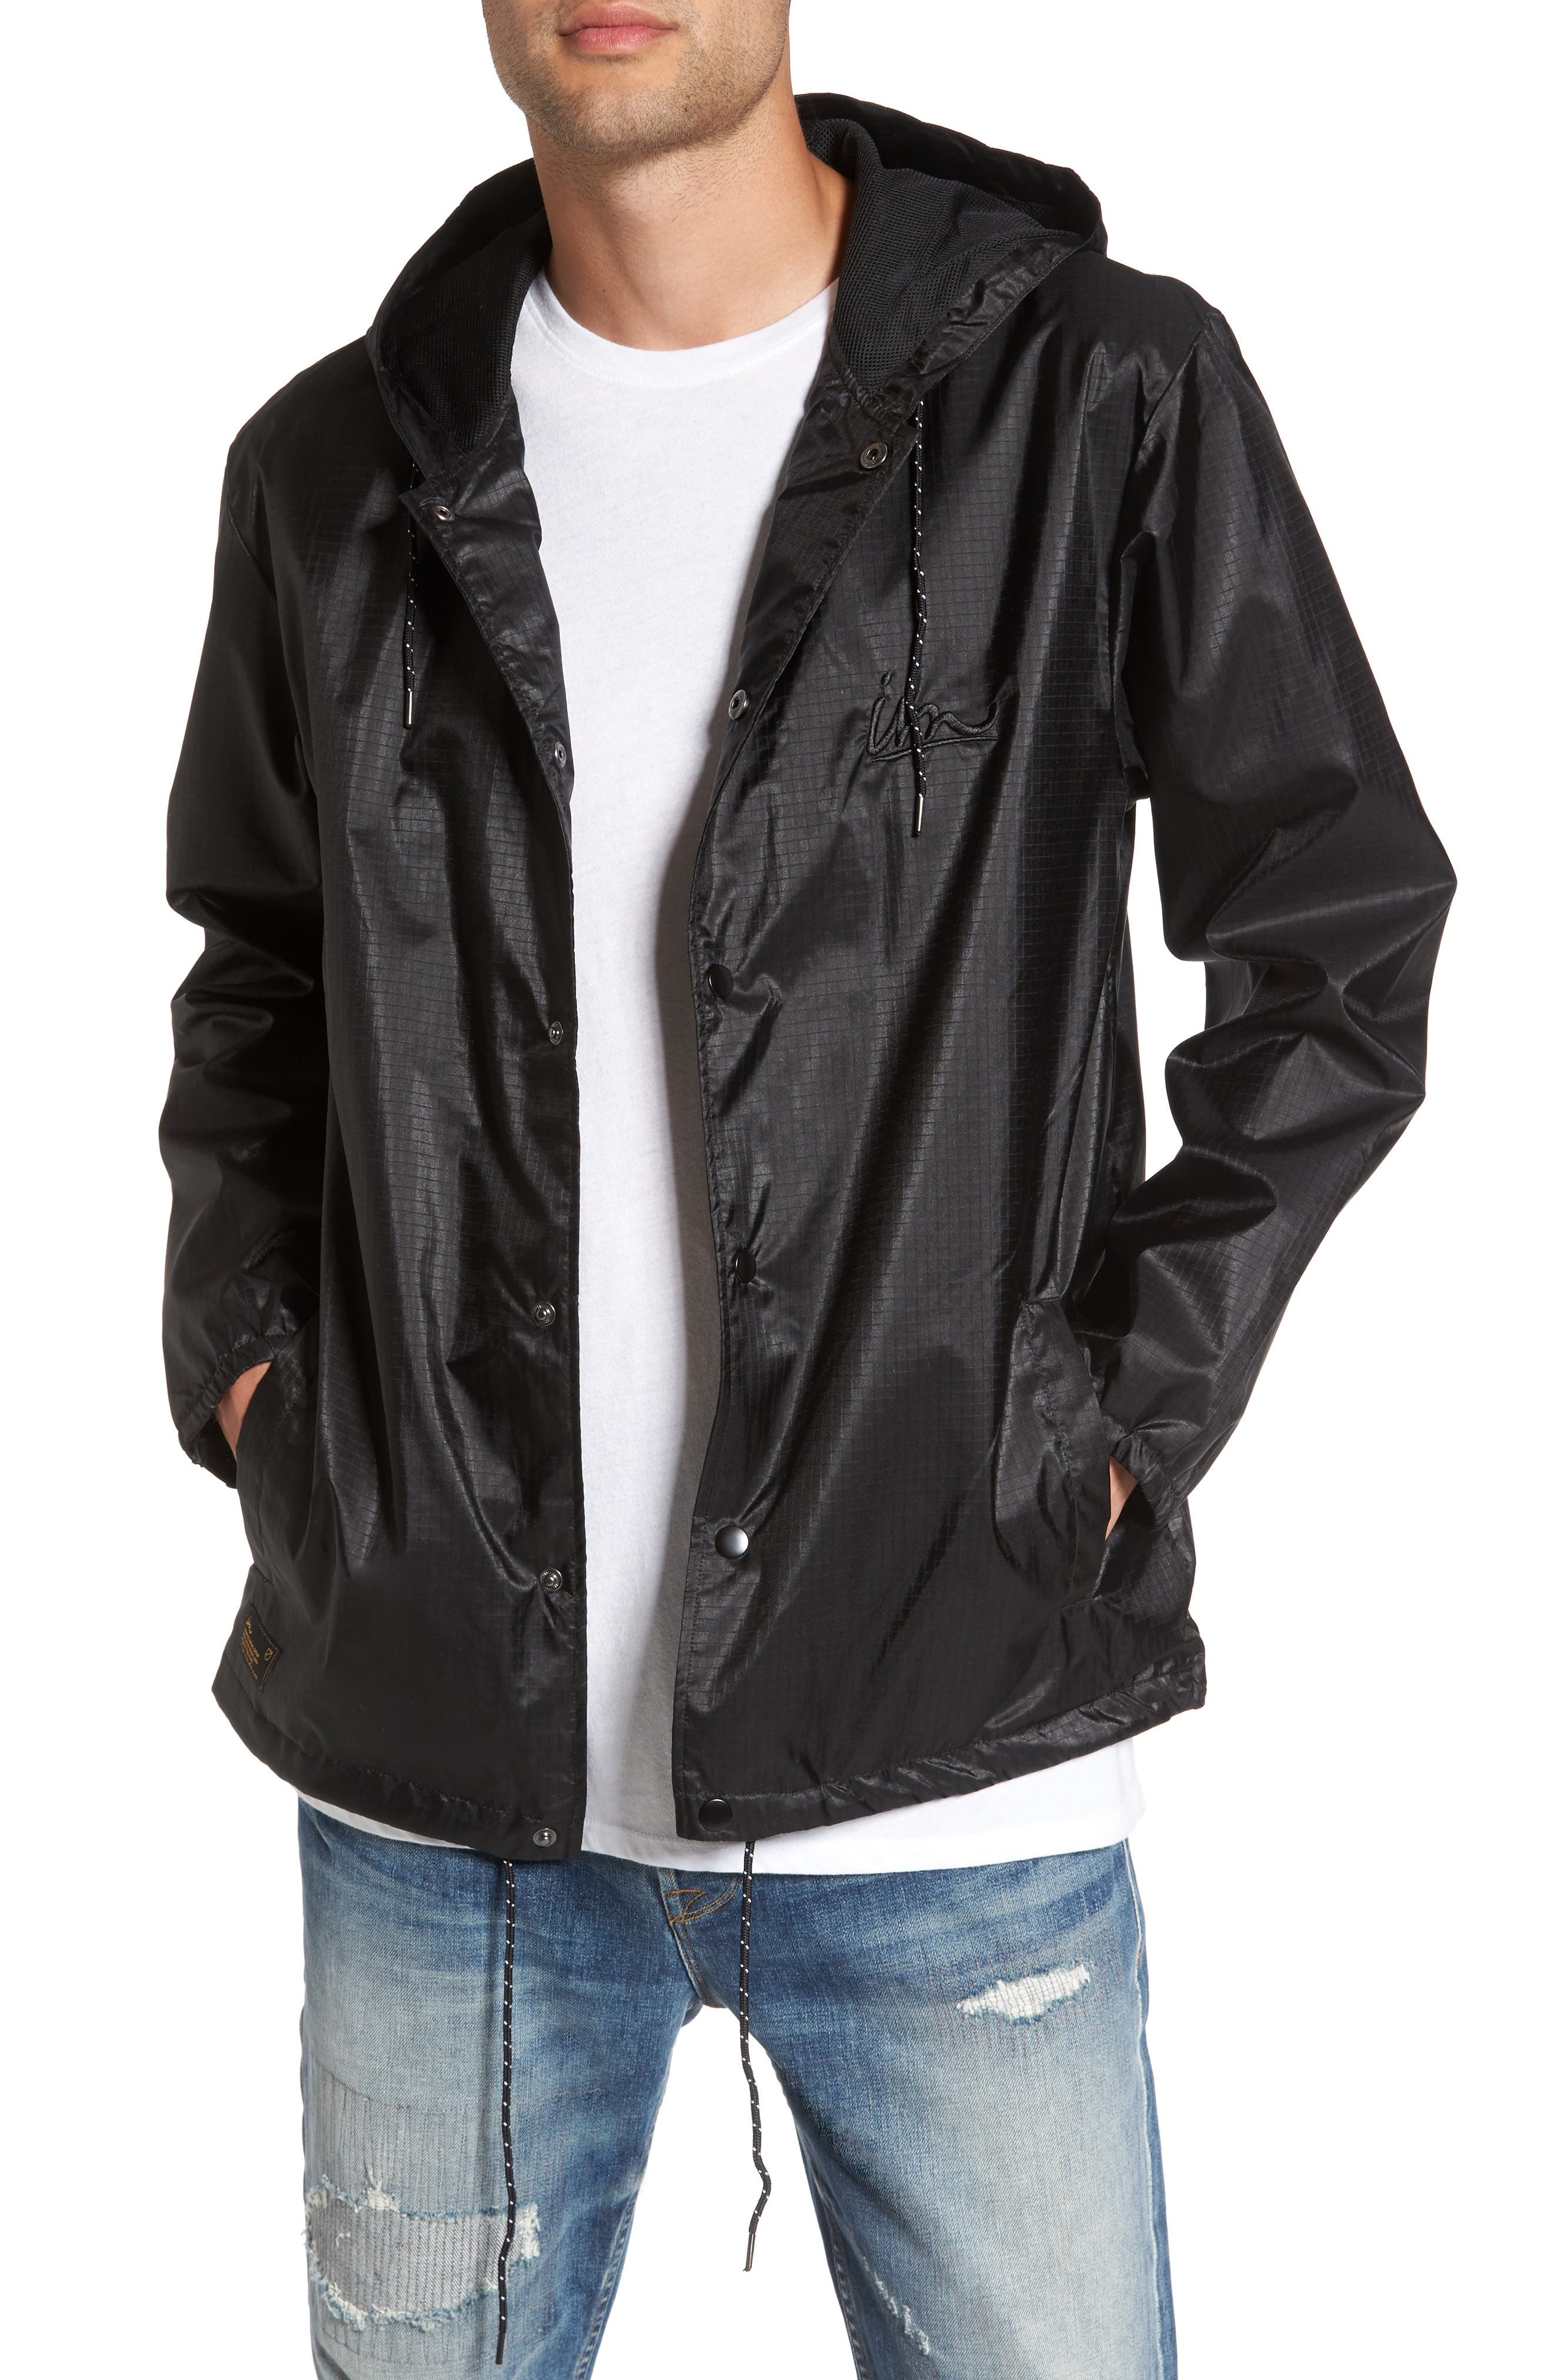 Imperial Motion NCT Vulcan Coach's Jacket